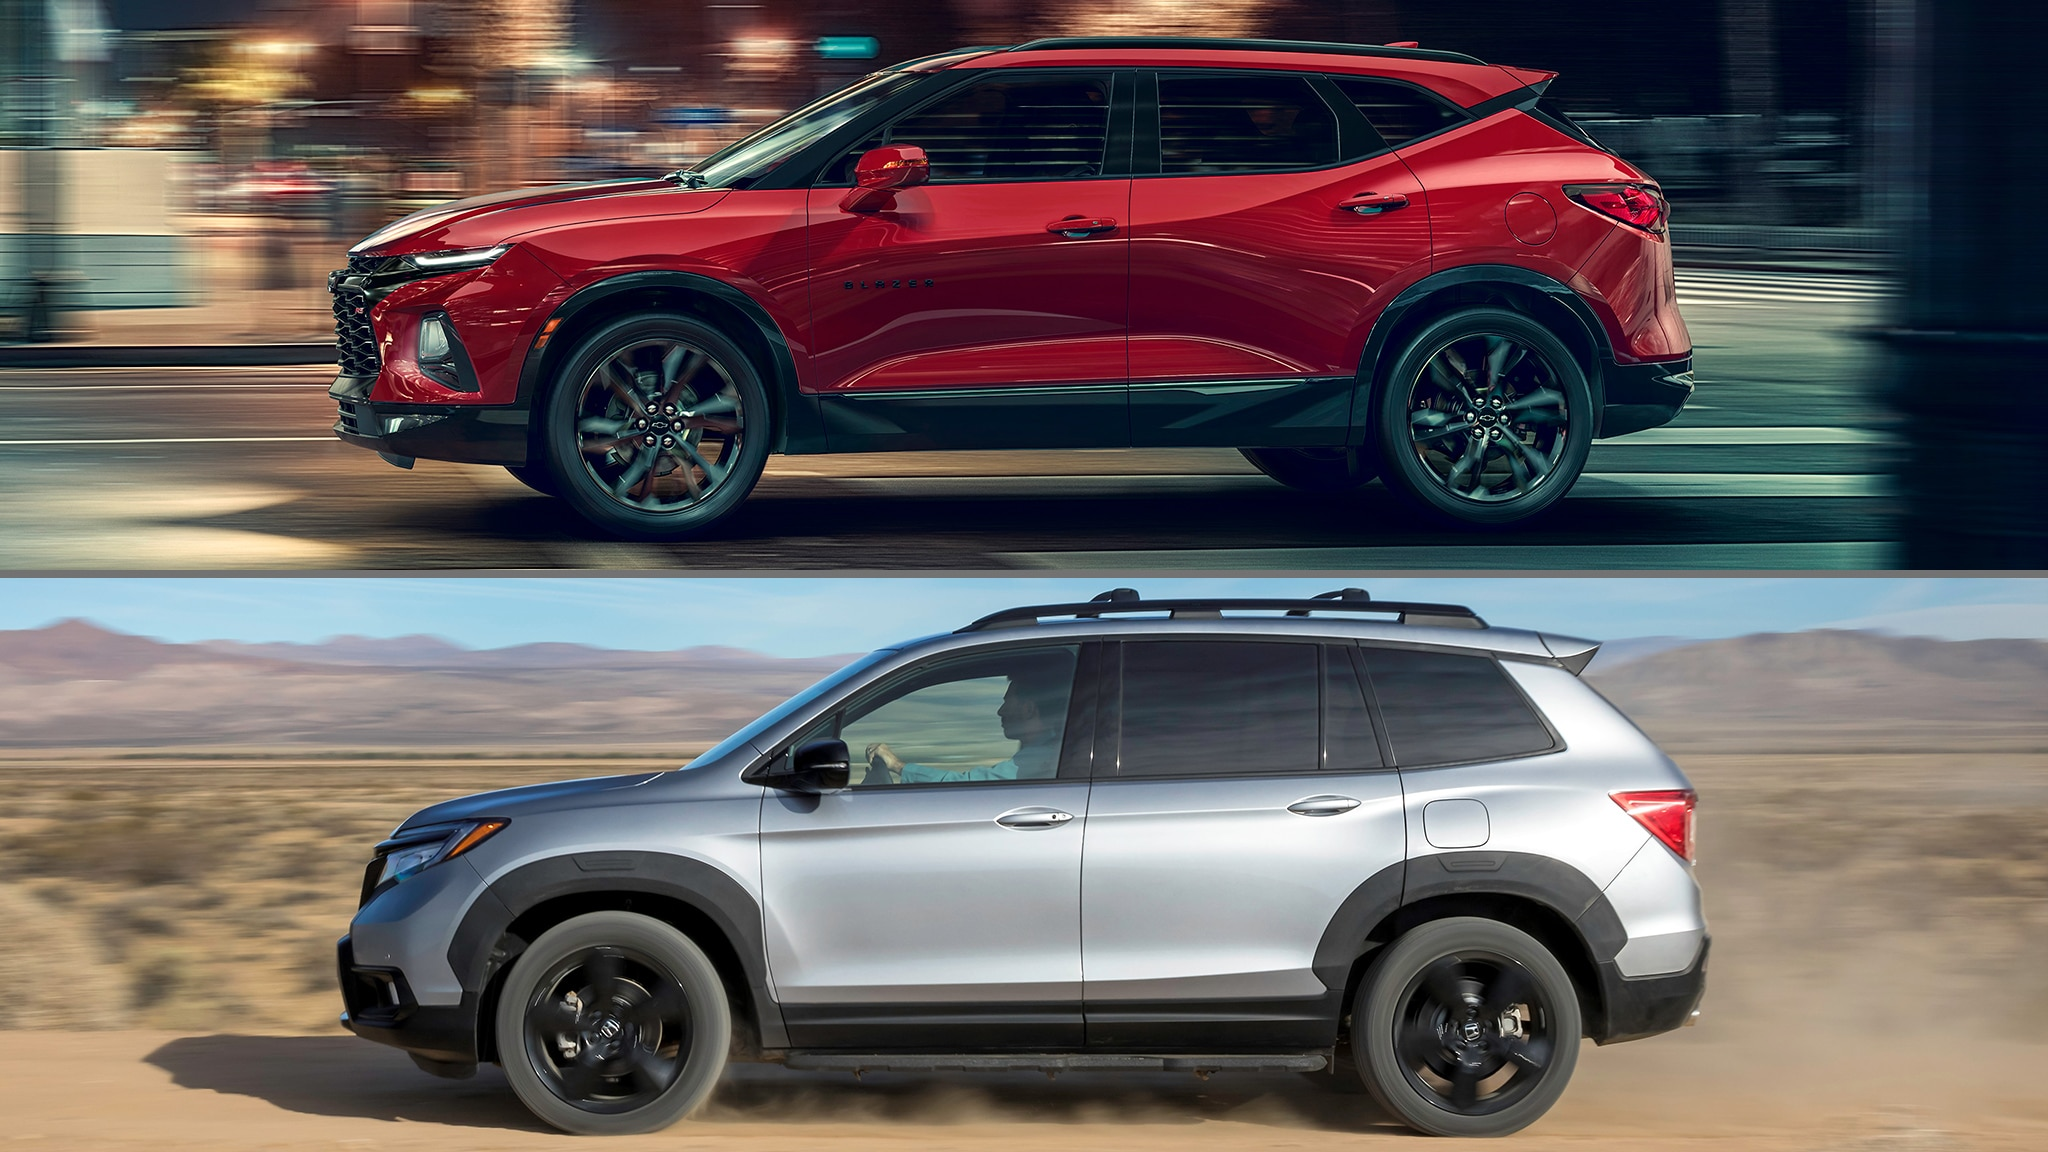 2019 Honda Passport 2019 Chevrolet Blazer Graphic